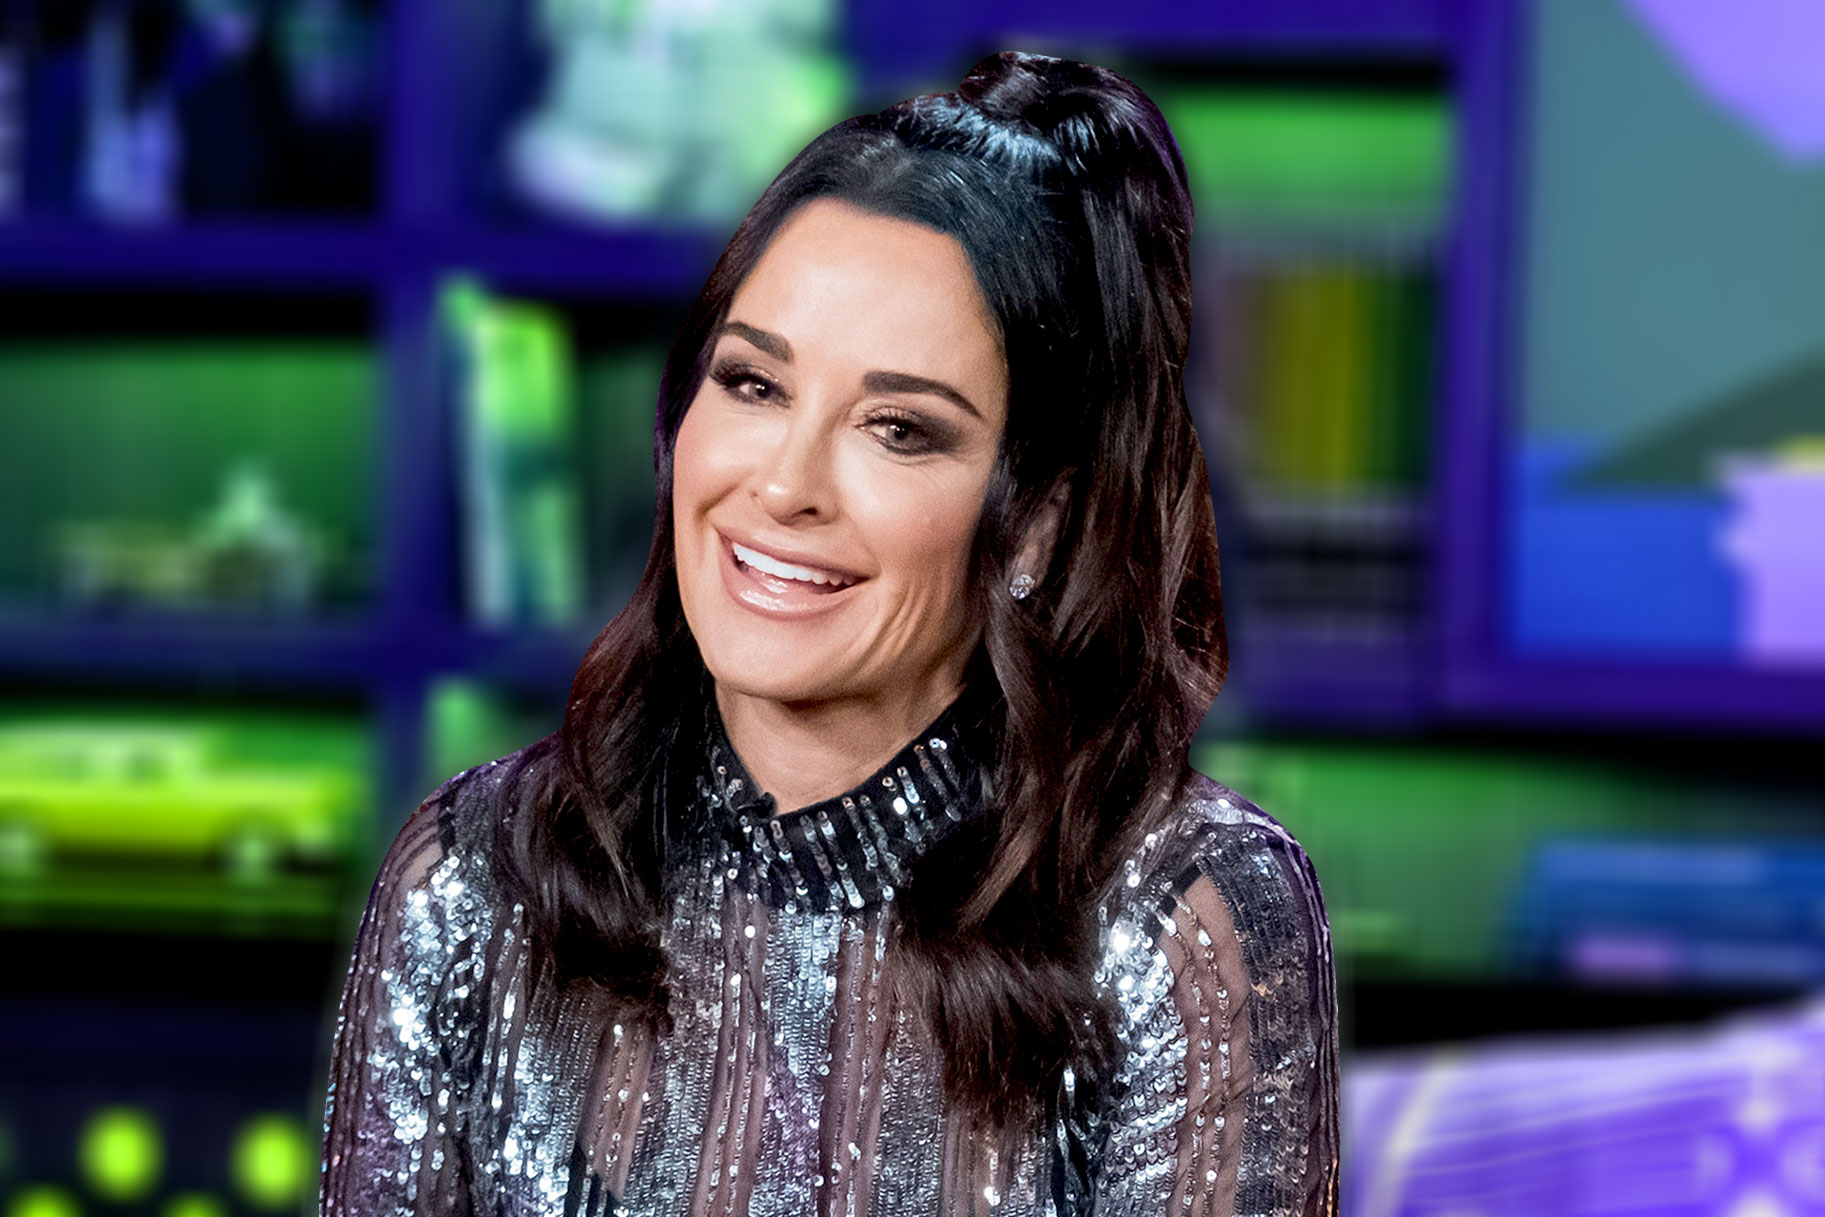 Following a Burglary, Is Kyle Richards Going to Leave Her New Home?